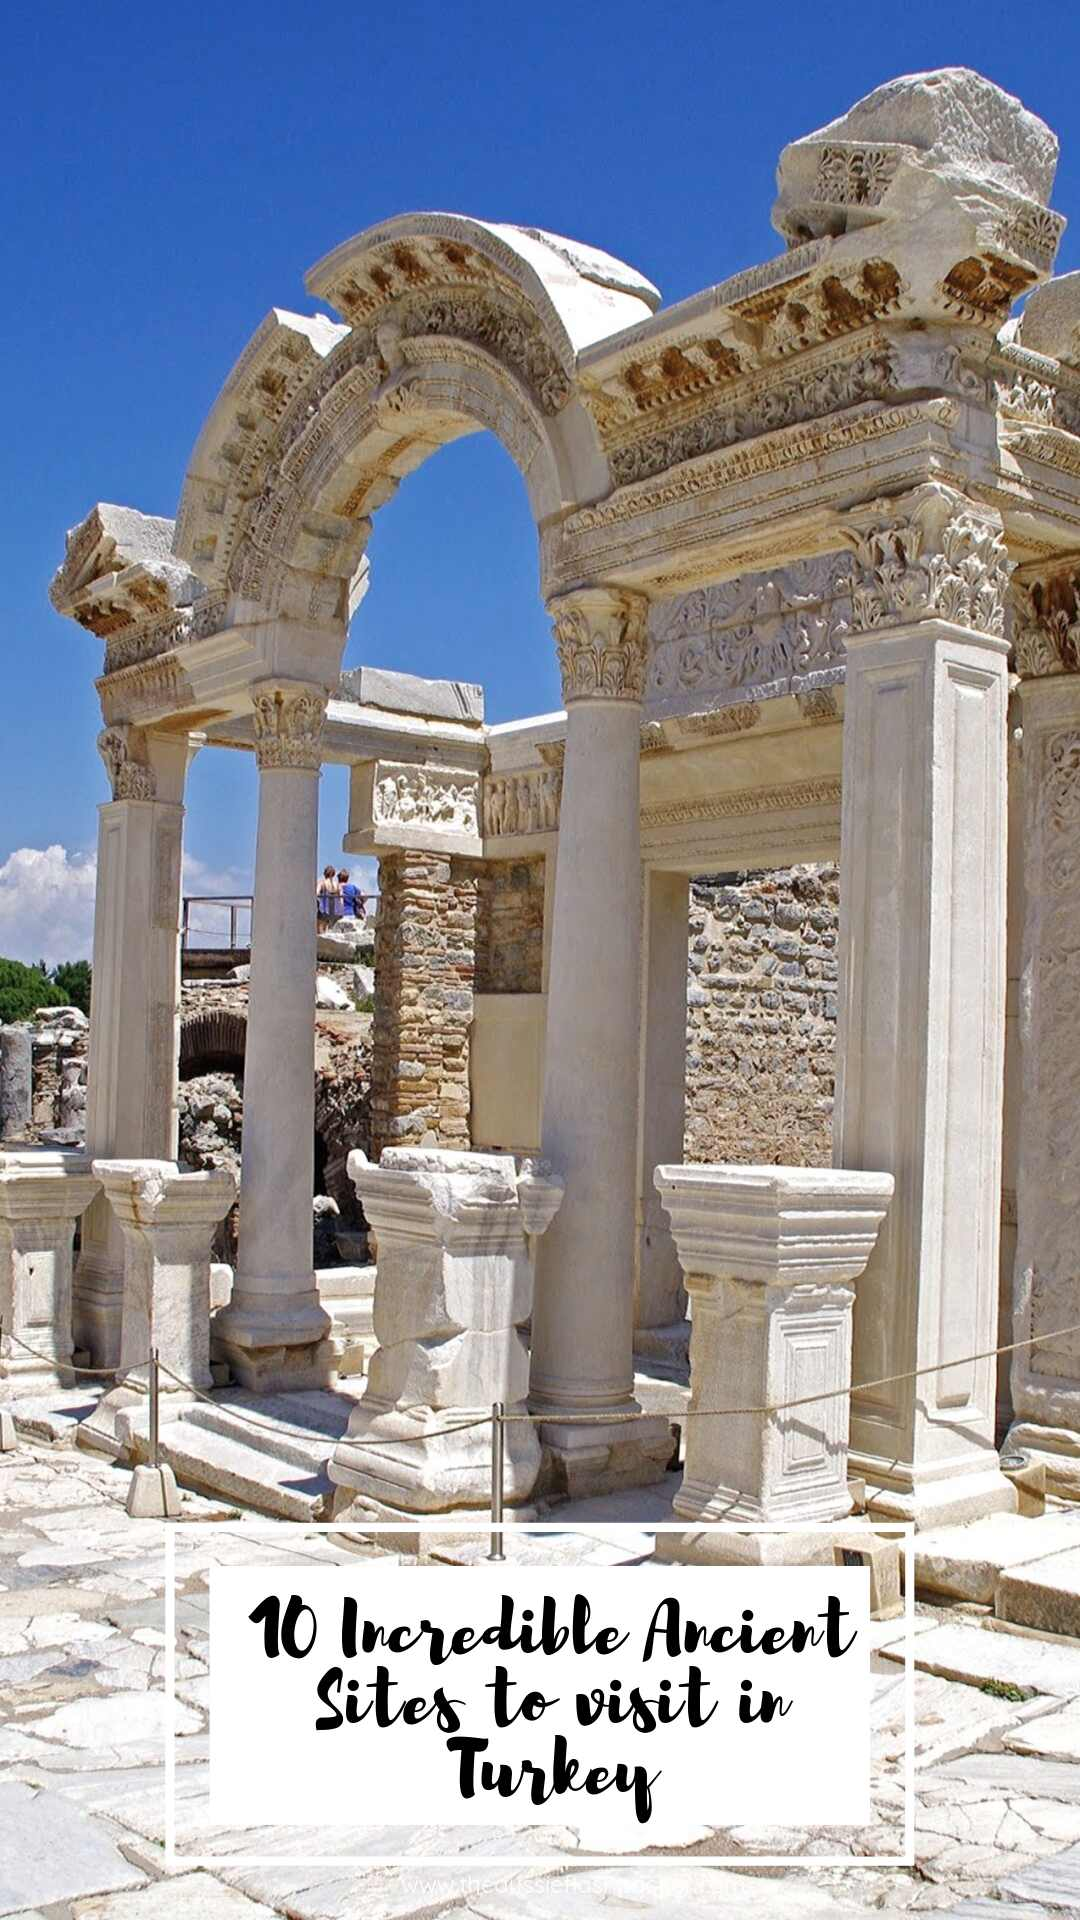 10 Incredible Ancient Sites to visit in Turkey